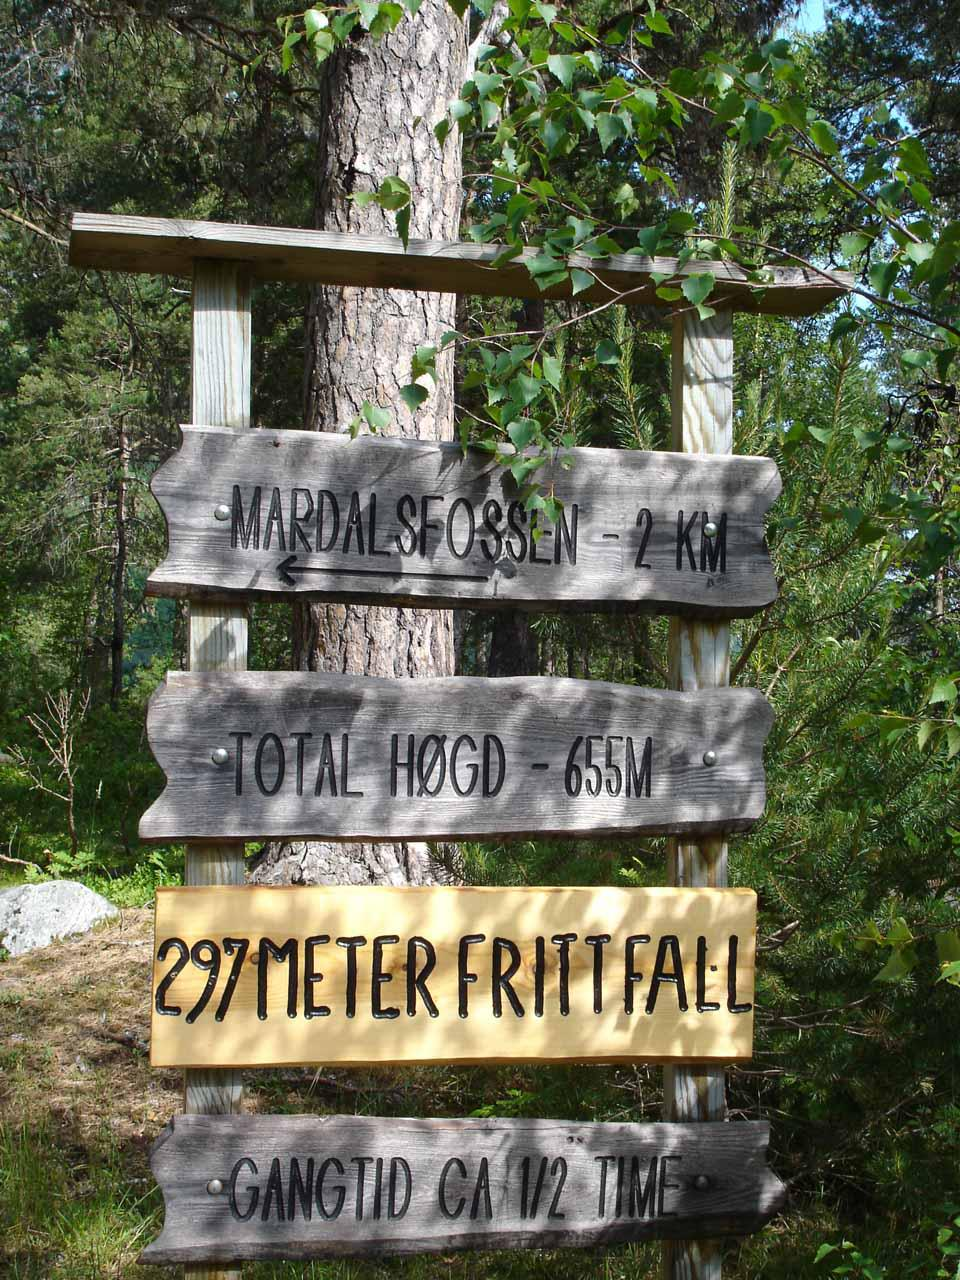 Some signage seen as the trail changed from gravel road to a narrow footpath through forest